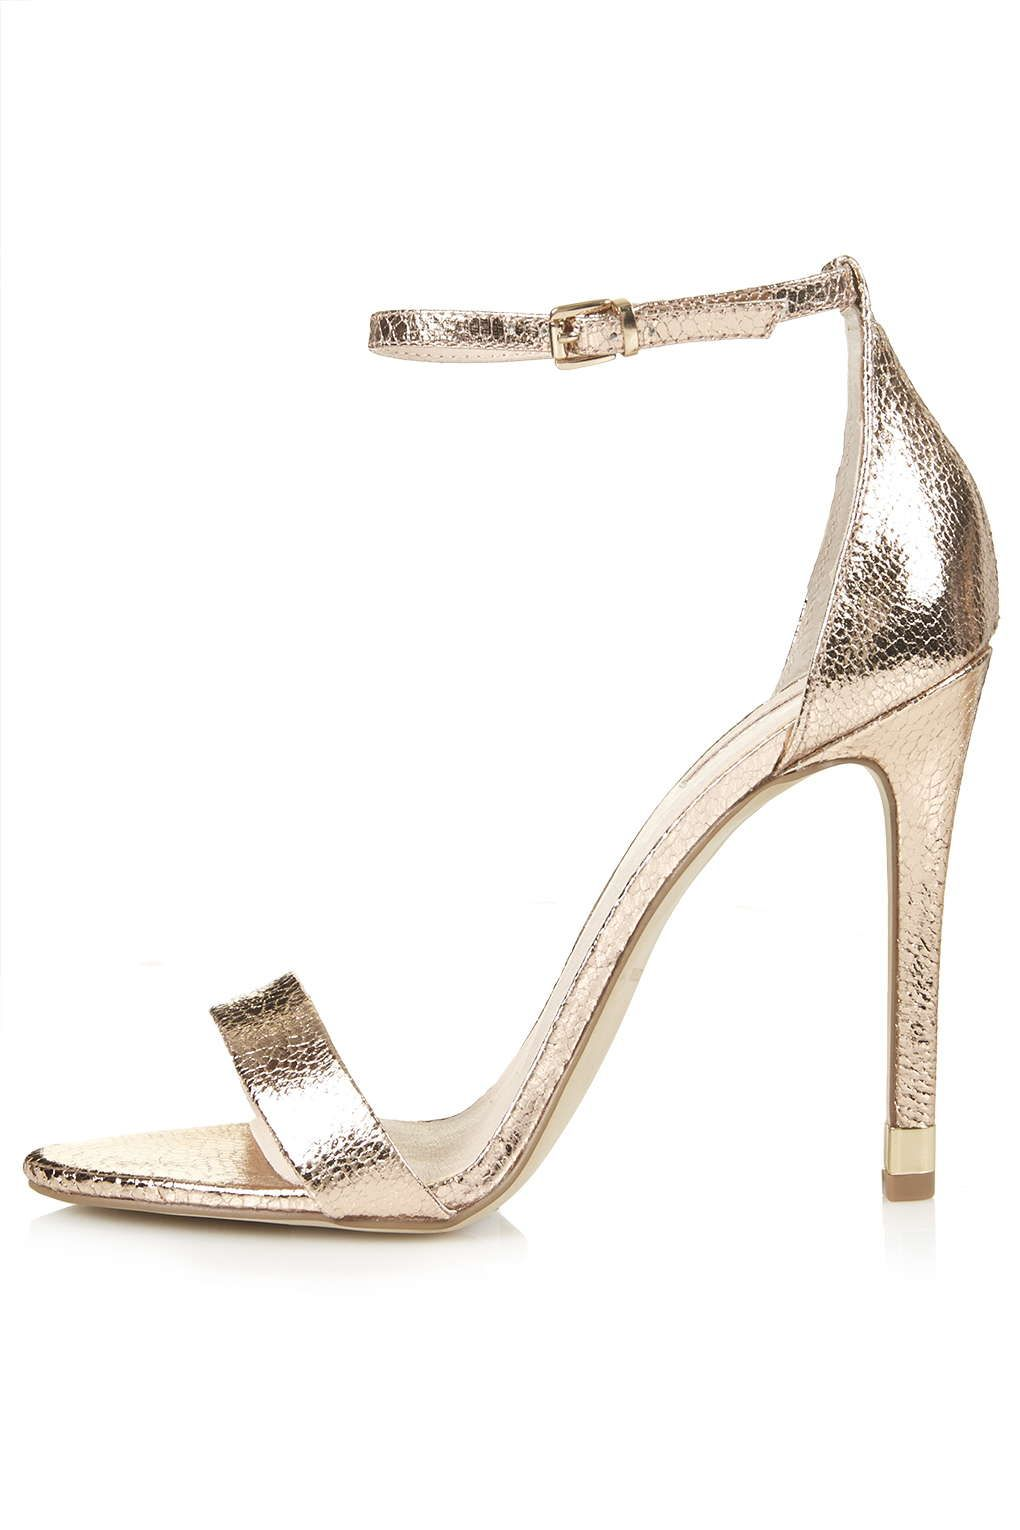 RUBY Metallic High Sandals - Topshop | Stiletto | Pinterest | High ...